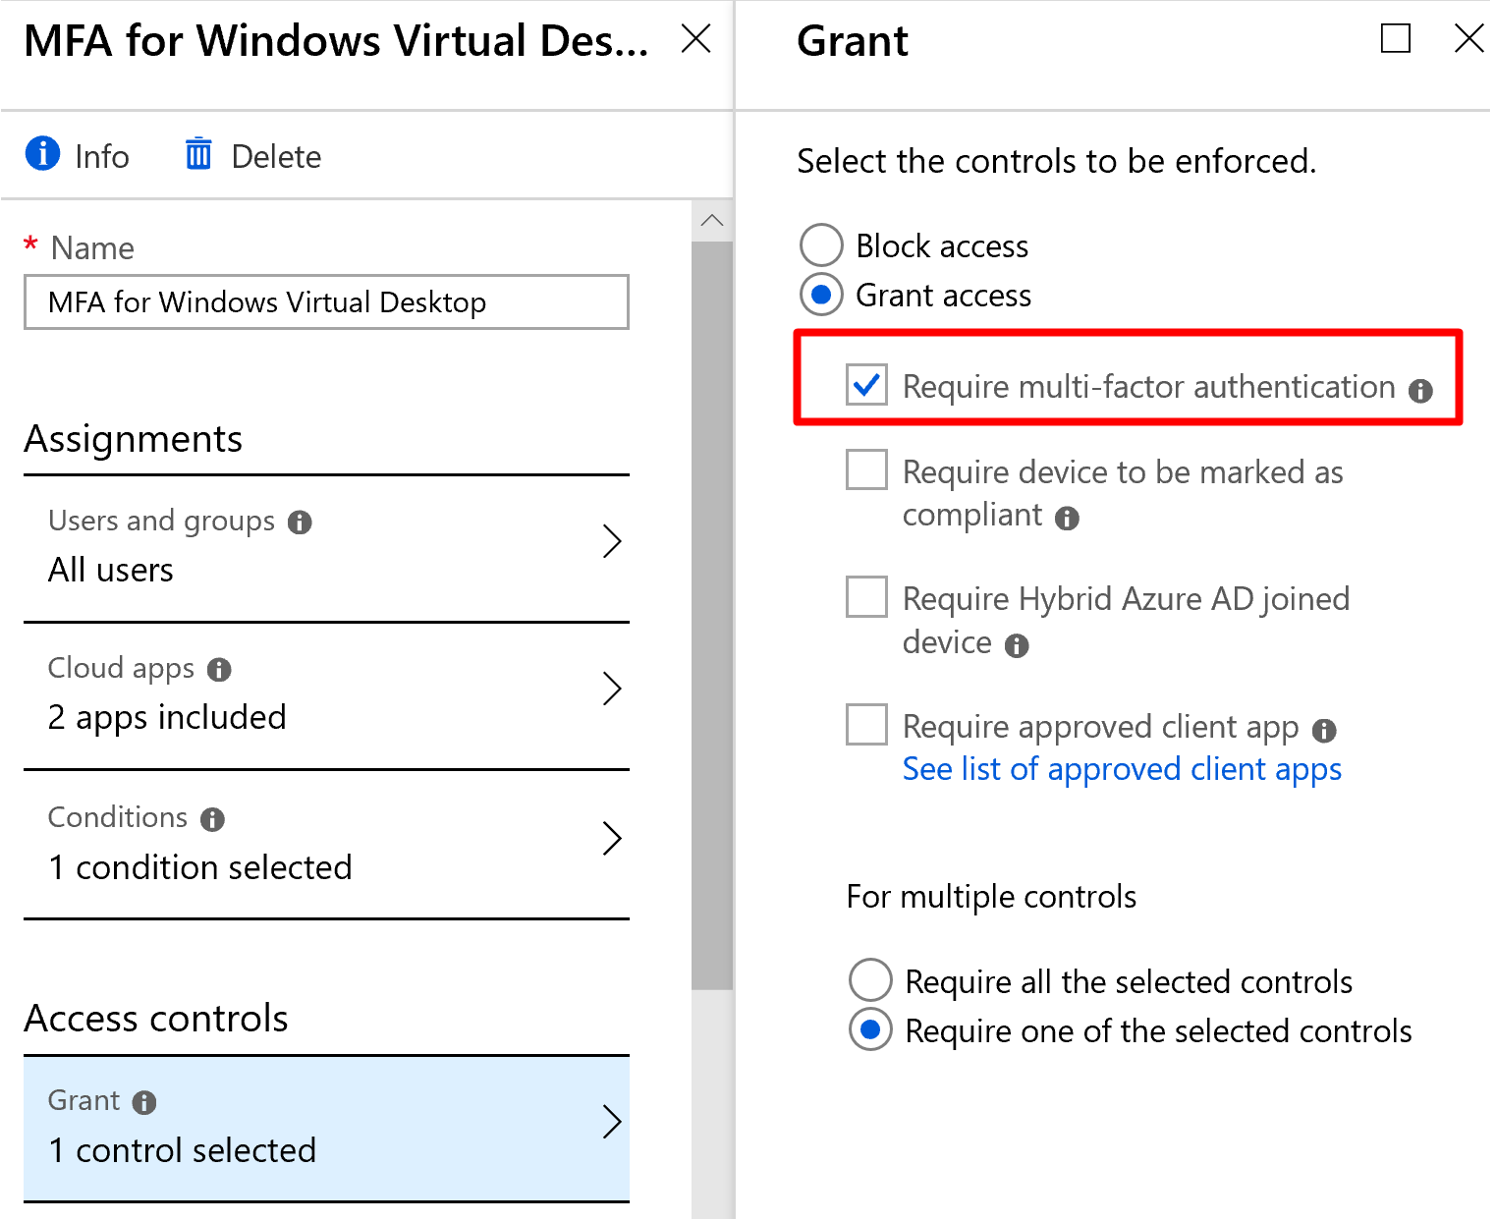 Step-by-Step Guide to Securing Windows Virtual Desktop with MFA